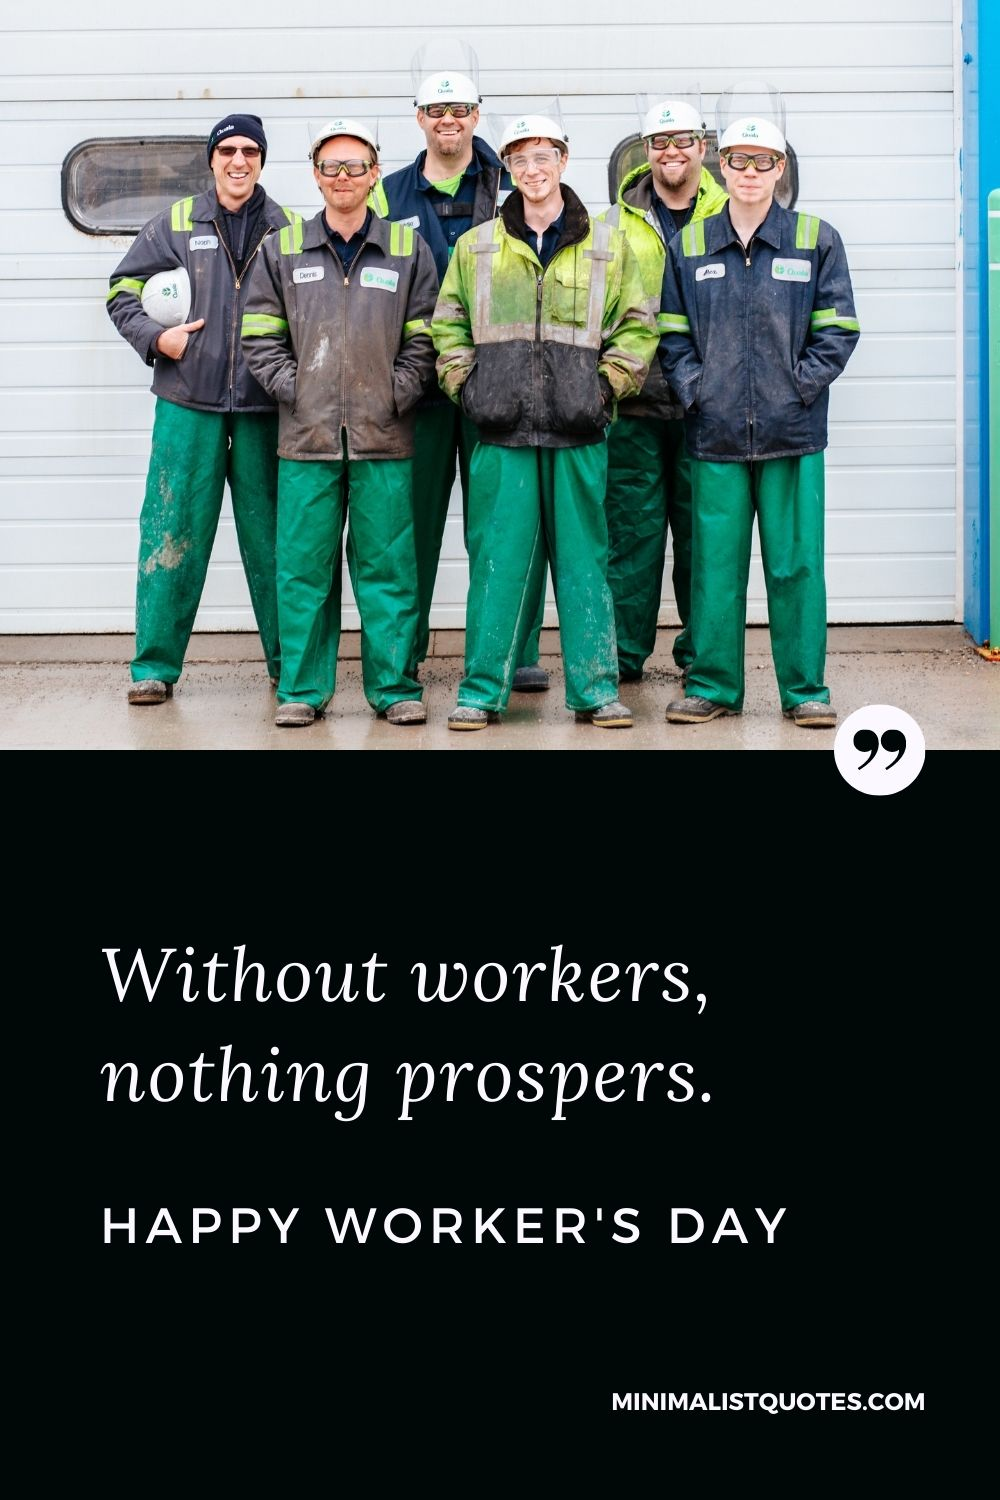 Worker's Day Quote, Wish, & Message With Image: Without workers, nothing prospers. Happy Worker's Day!